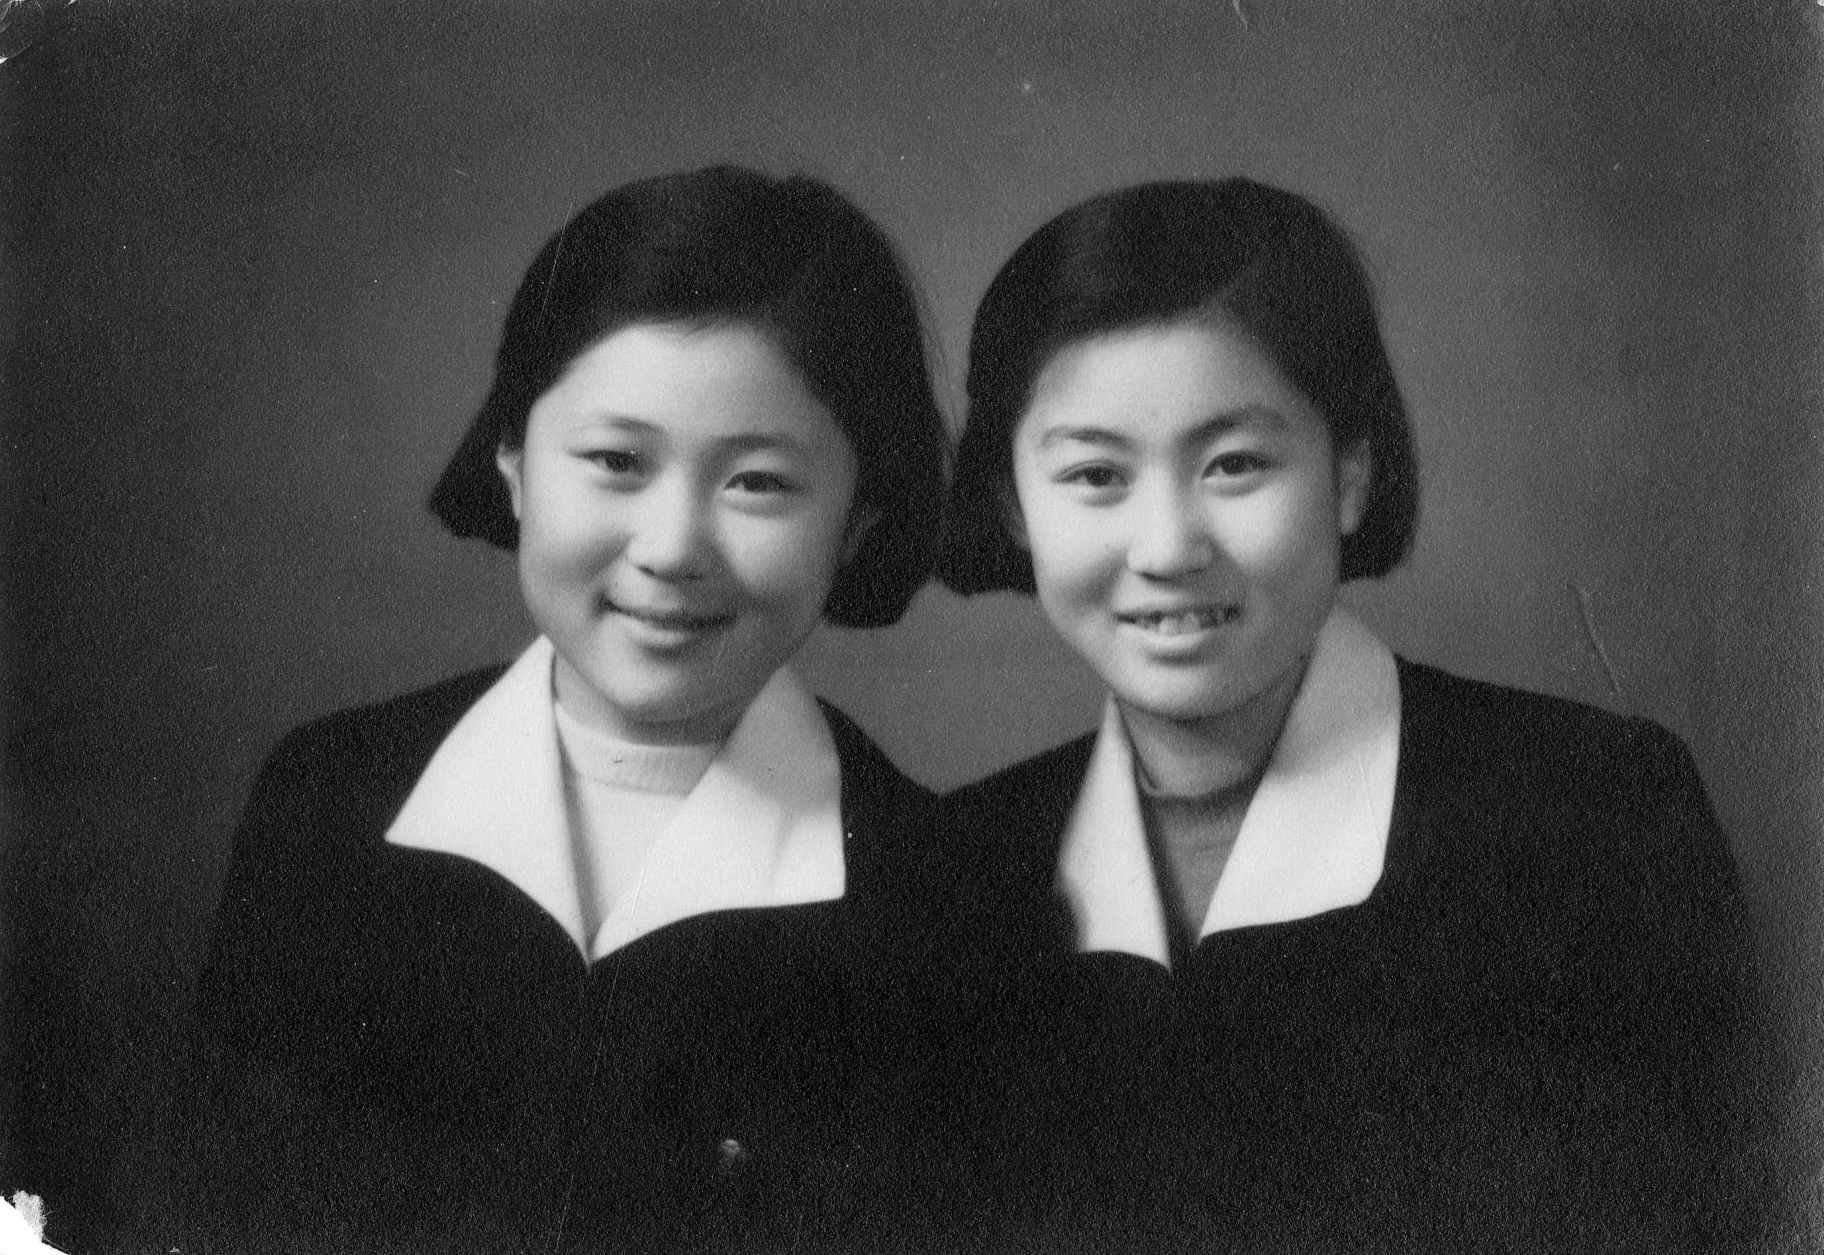 With her sister, in their school uniforms, 1950s